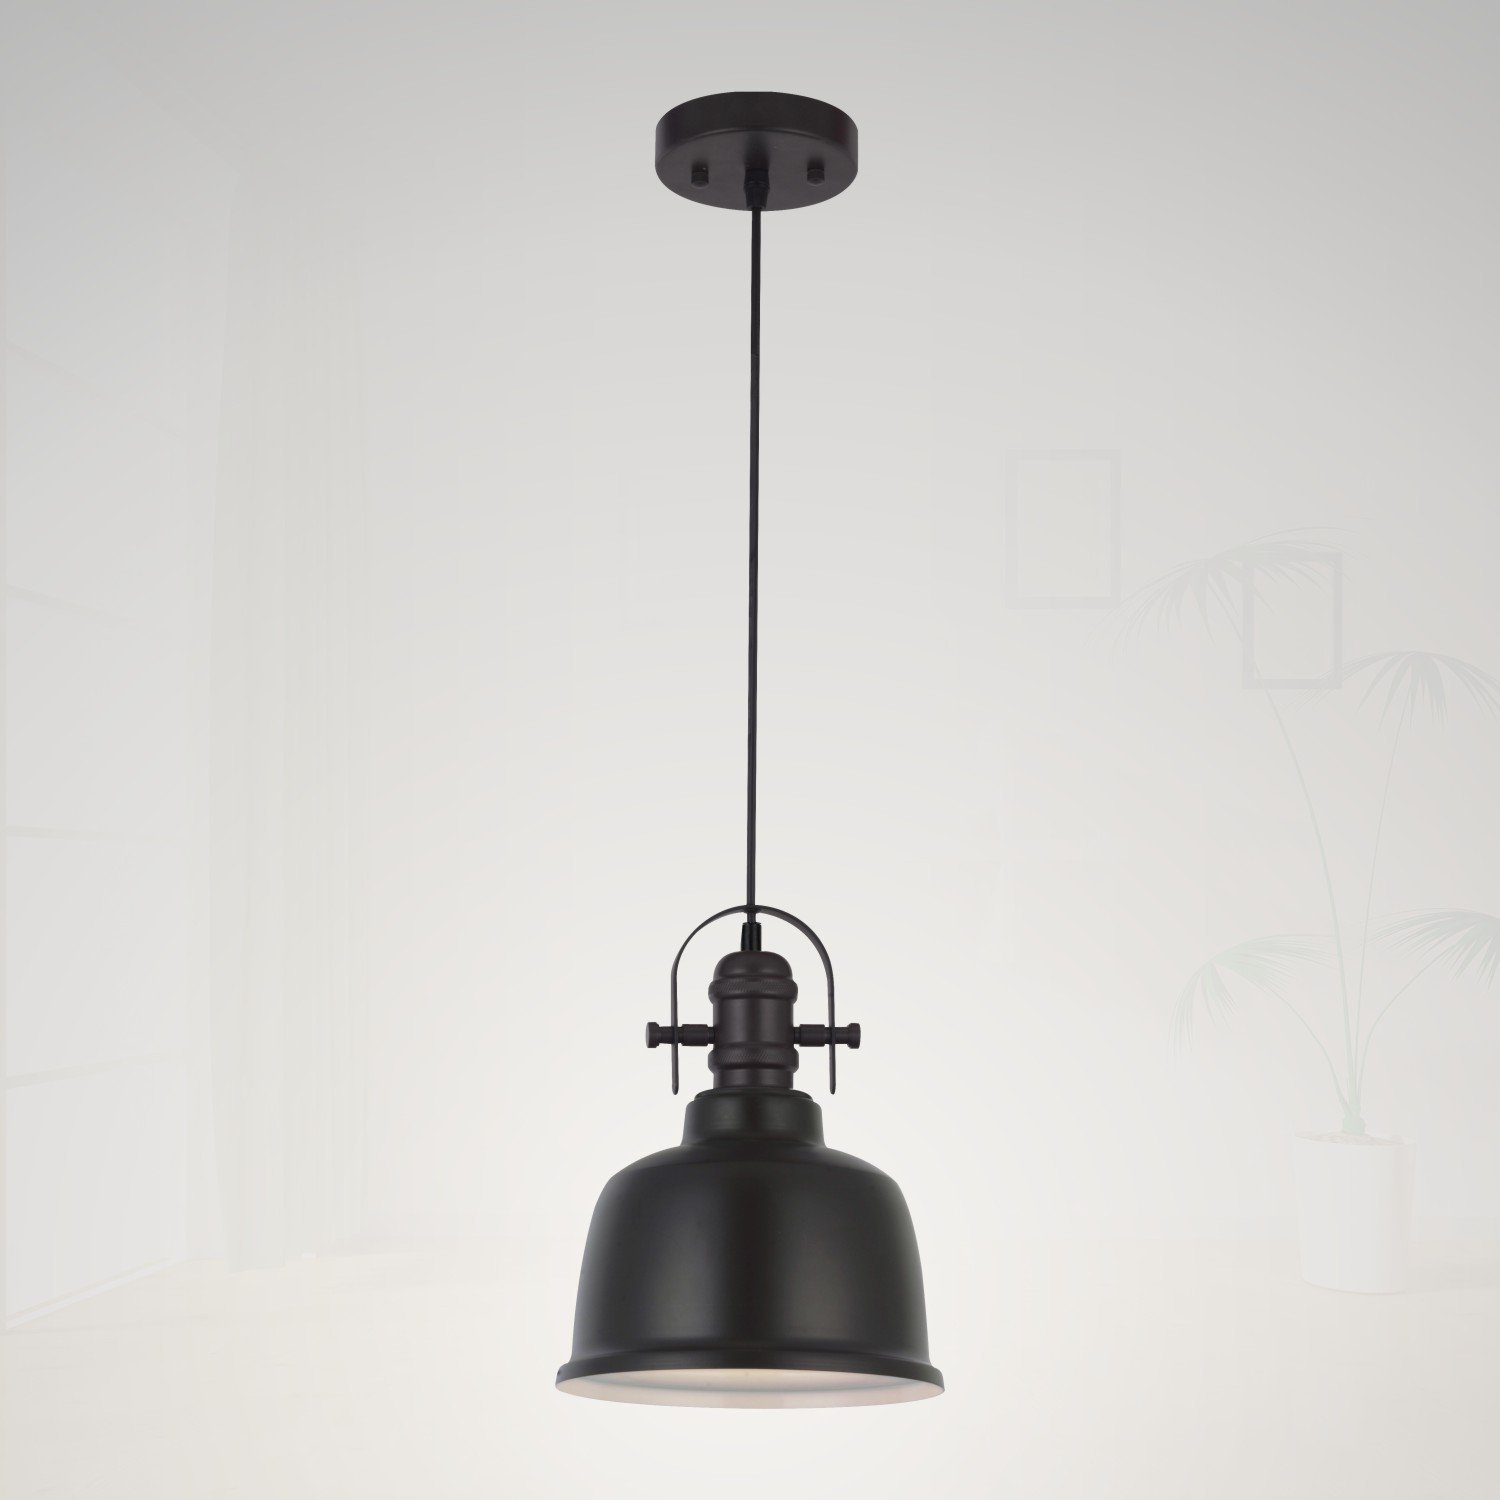 Industrial Pendant Light for Kitchen Island by MELUCEE, Oil Rubbed Bronze Finish, Vintage Modern Farmhouse Lighting Fixture Chandeliers for Dining Room